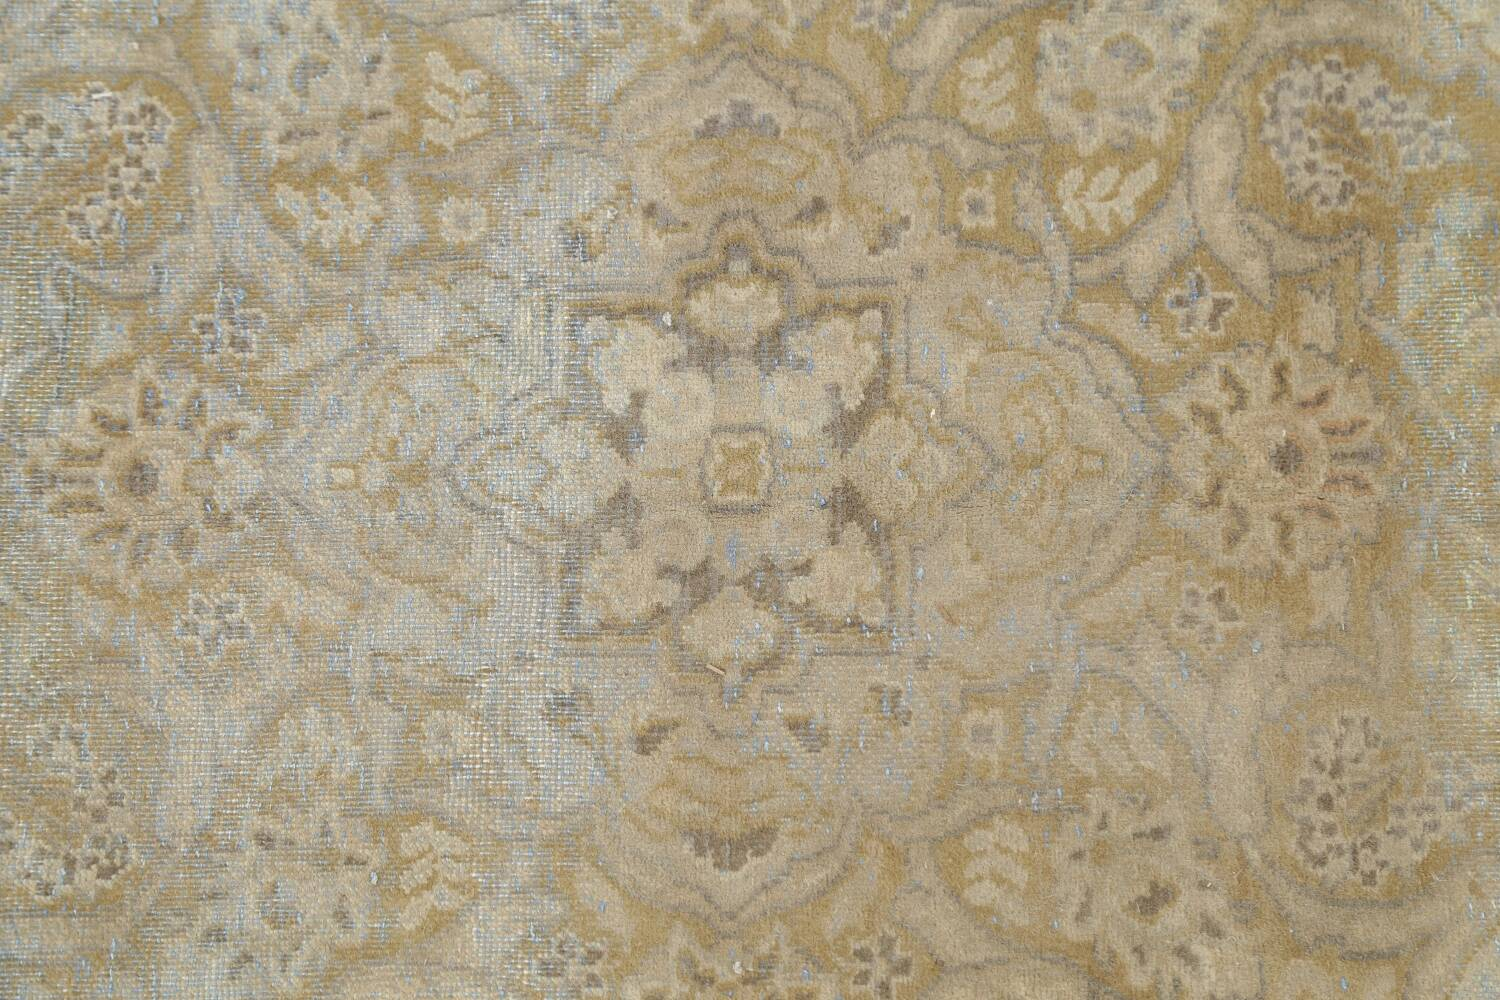 Muted Distressed Antique Kashan Persian Area Rug 7x10 image 12